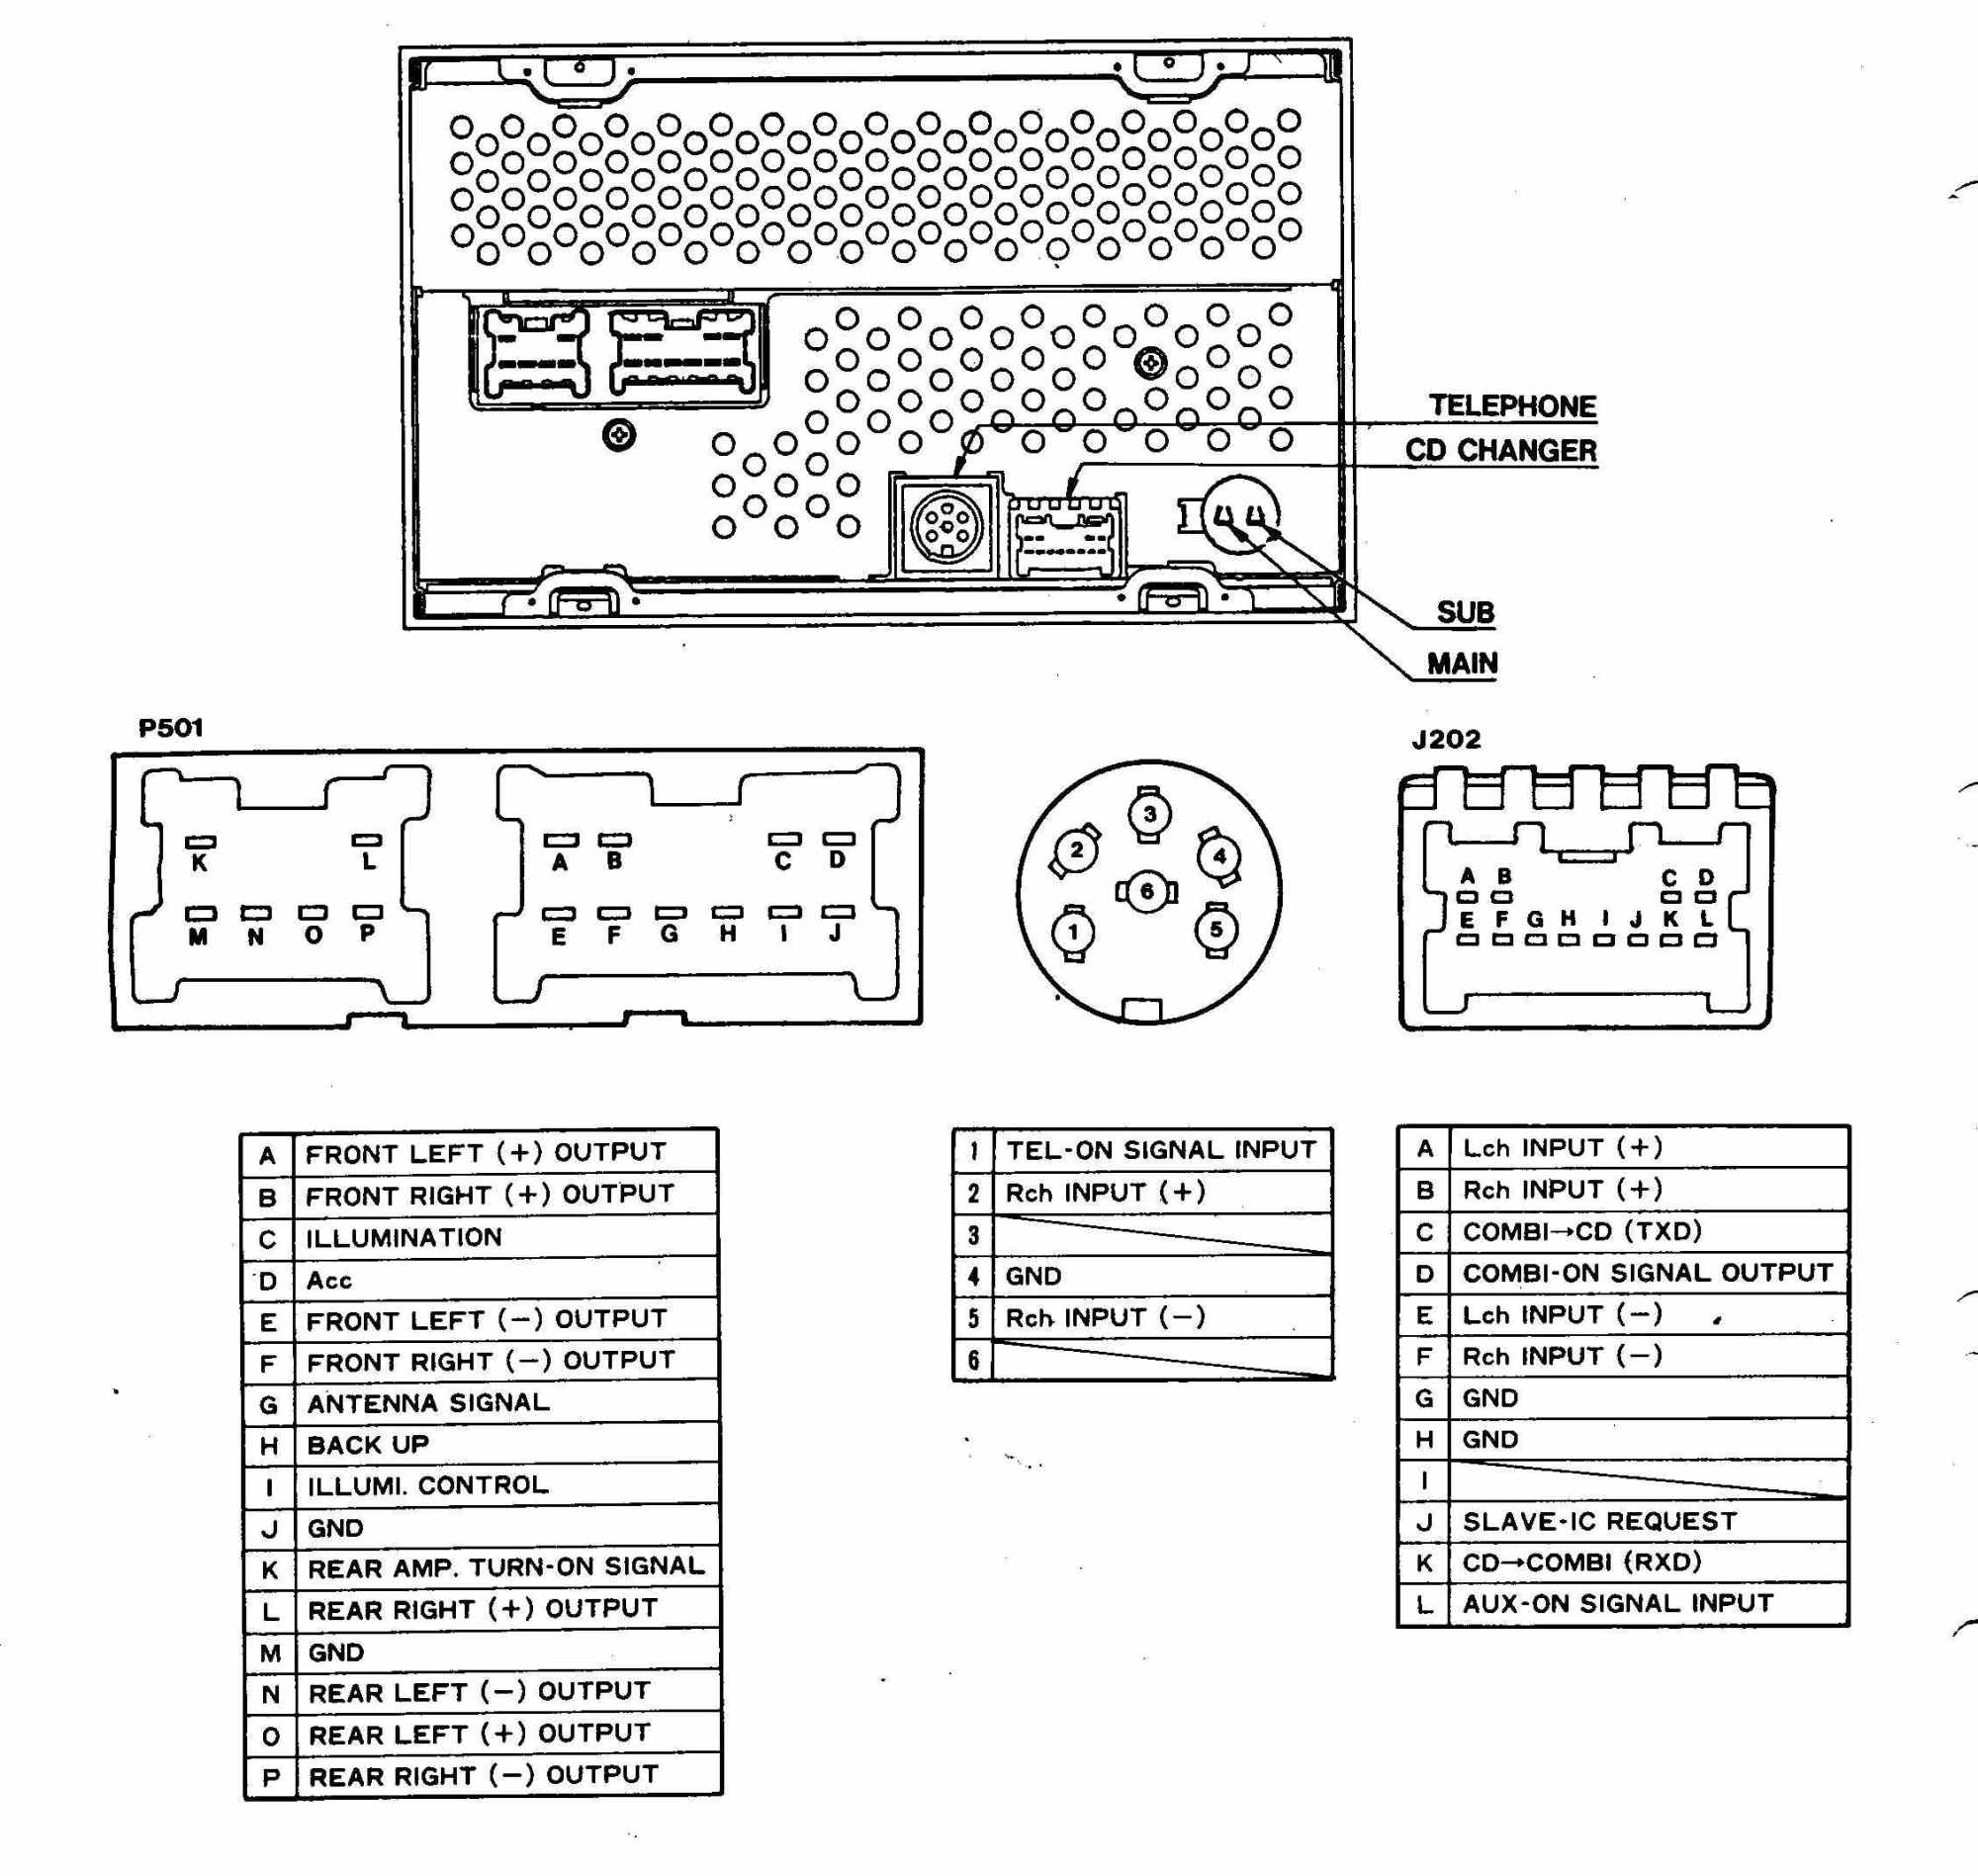 hight resolution of 94 sentra fuse diagram wiring library94 sentra fuse diagram